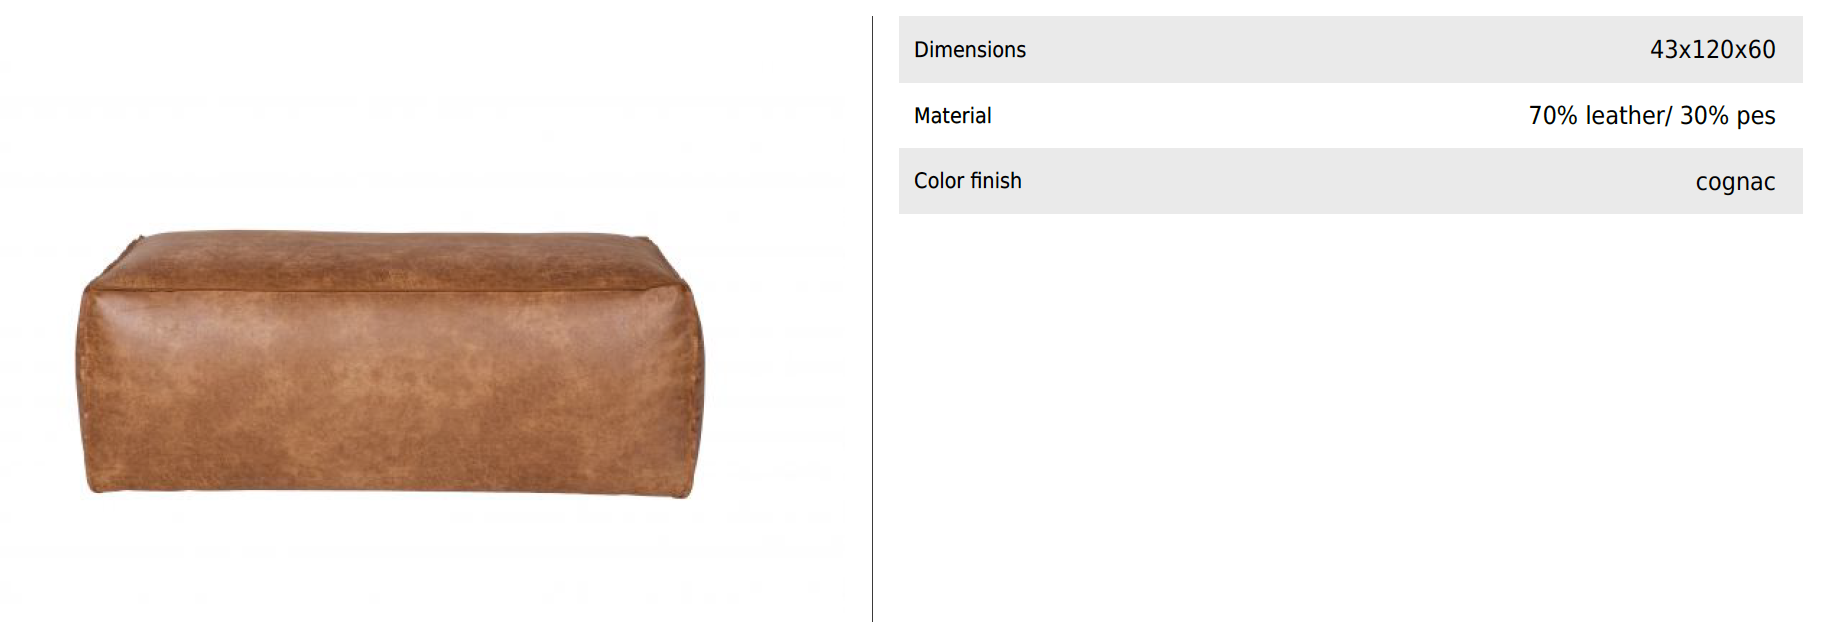 Etsy Dimensions